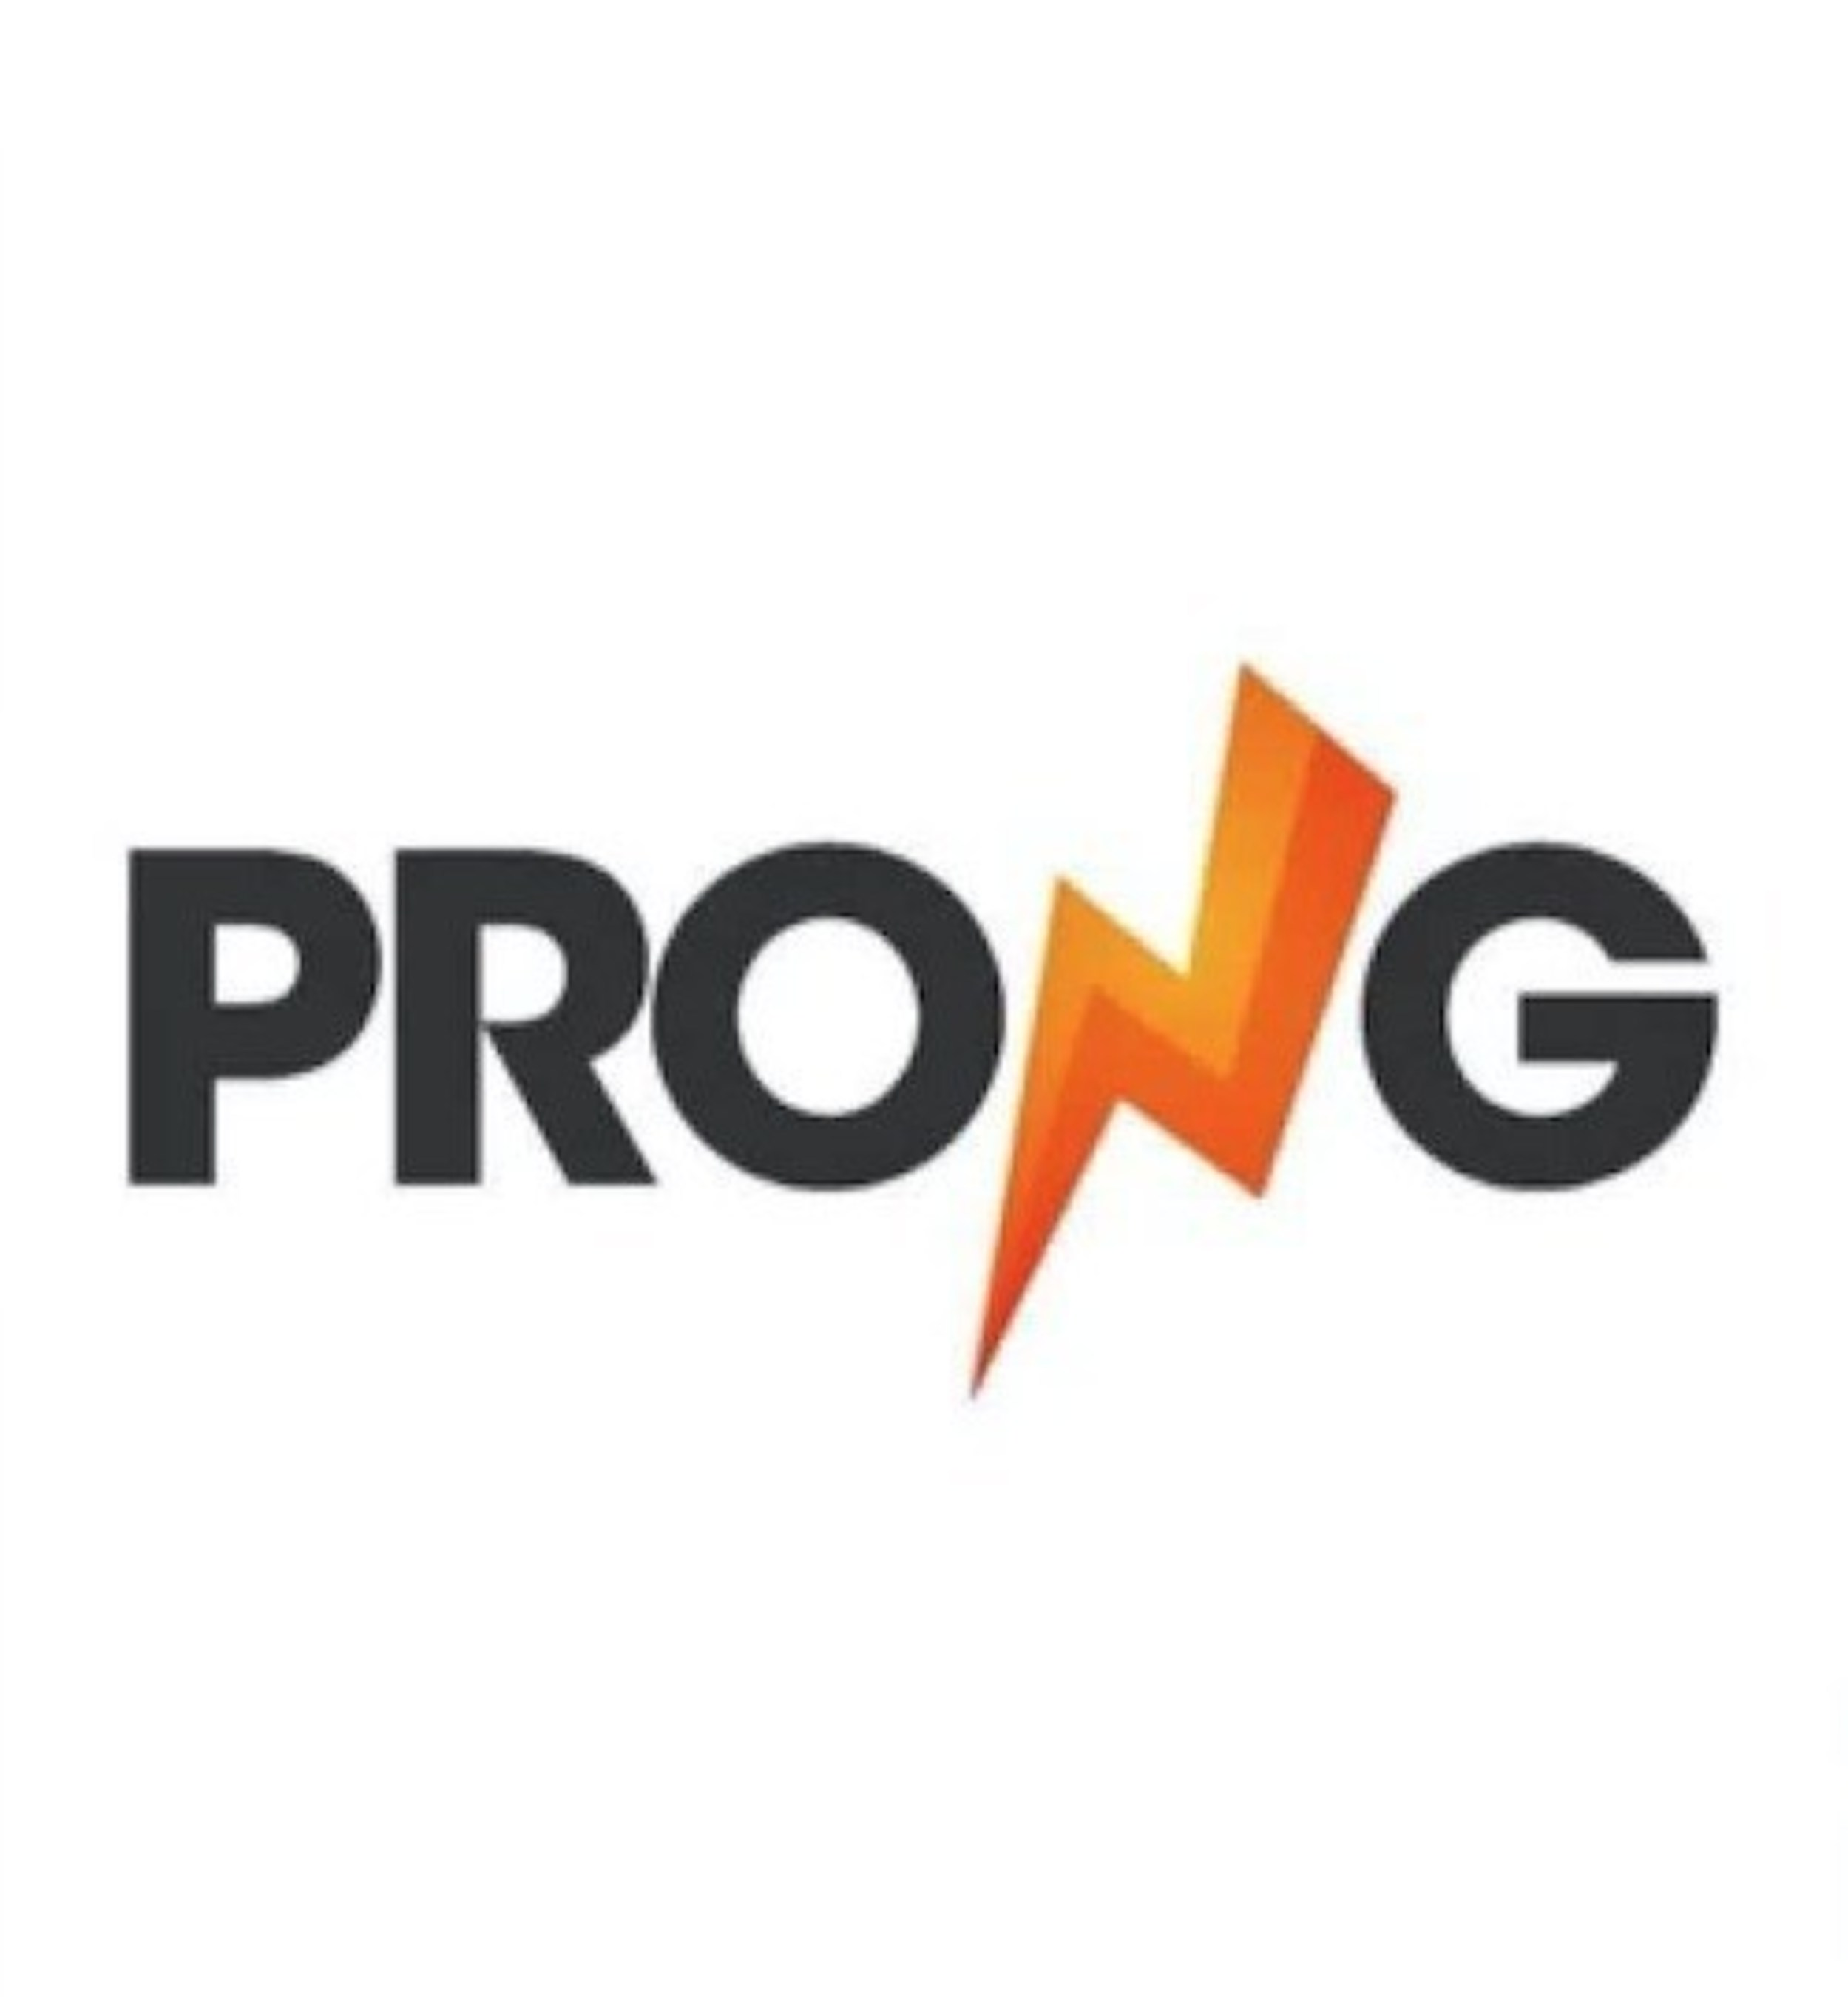 Prong Examines If Apps in the iPhone Multitasking Switcher Drain Battery Life